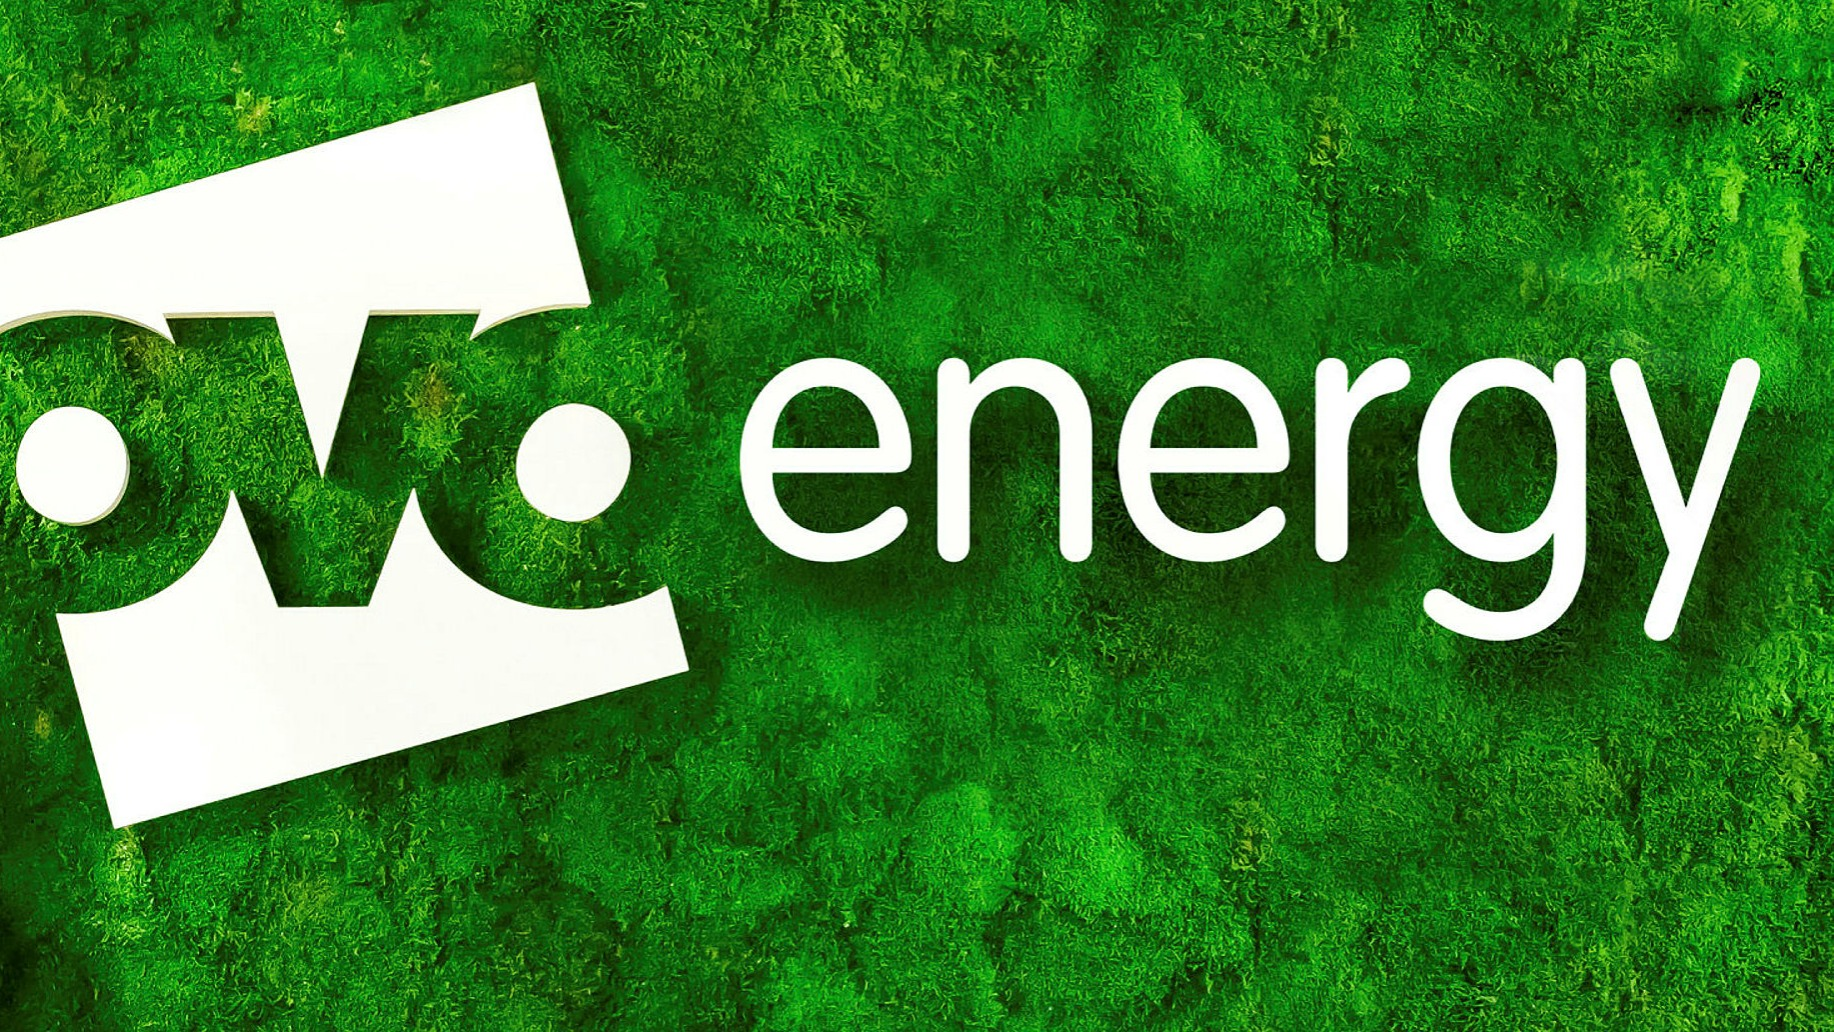 UK's Second Largest Energy Supplier to Cut 2,600 Jobs